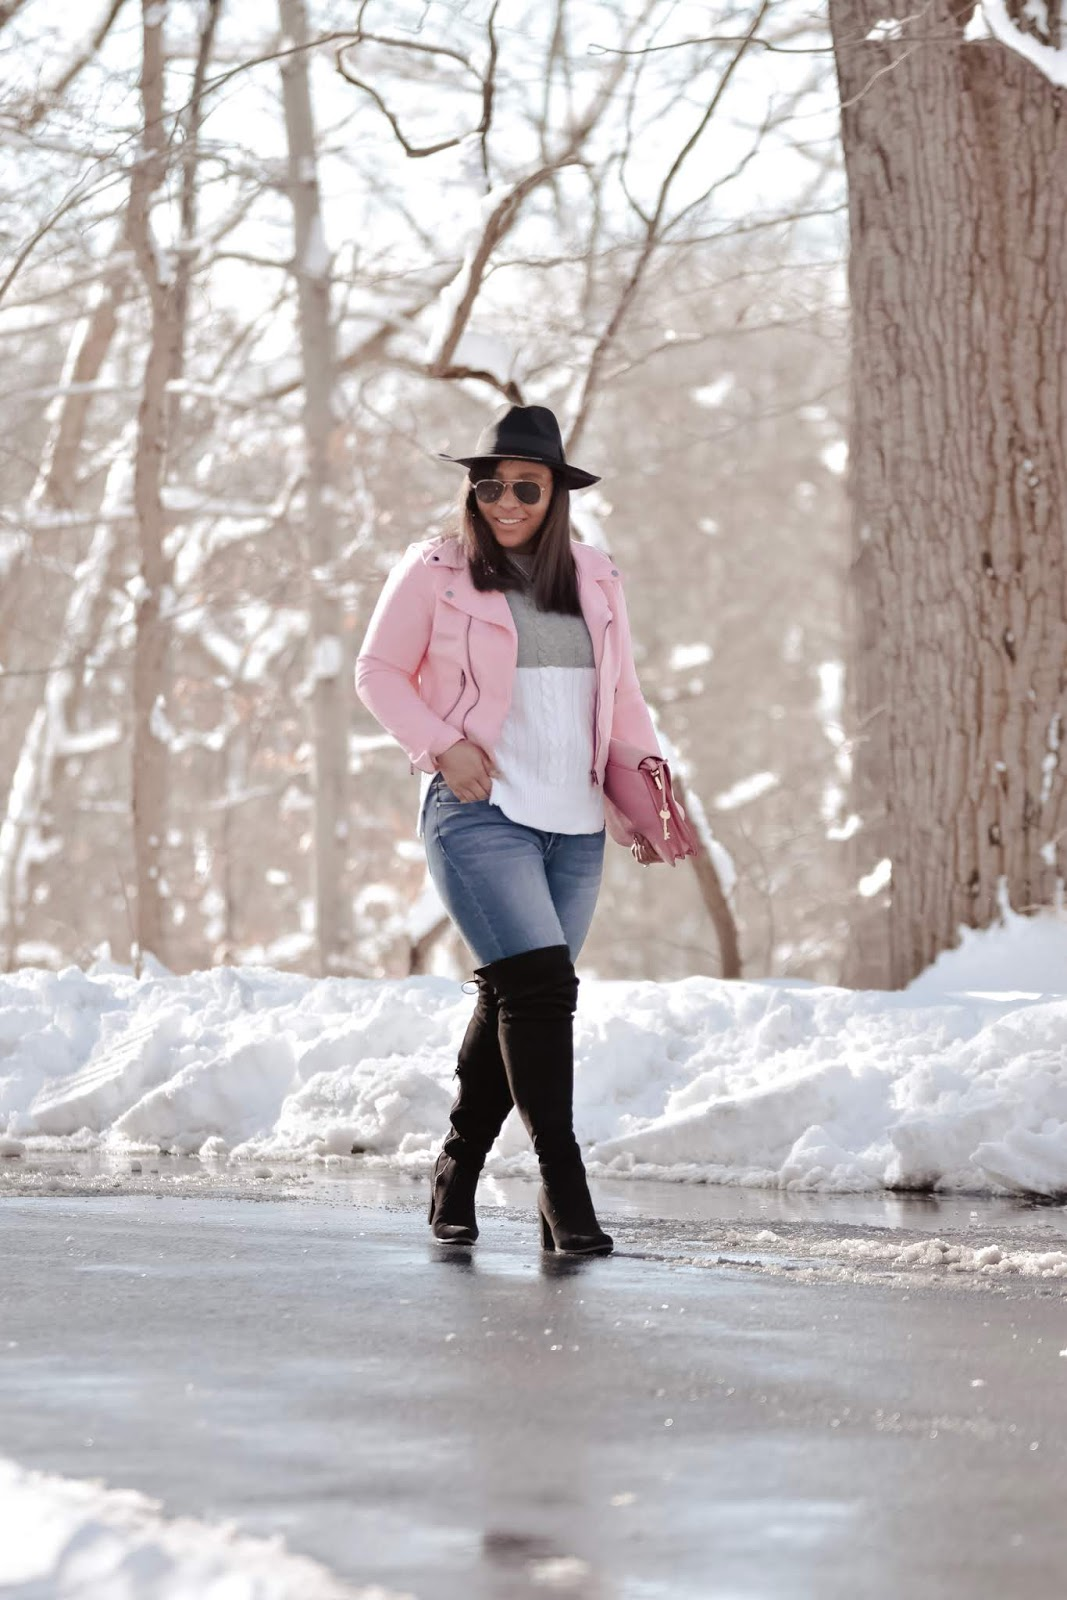 winter wonderland, mom bloggers, fashion bloggers, otk boots, winter hats, pink outfits, pink motto jacket, lookbookstore,knit sweater